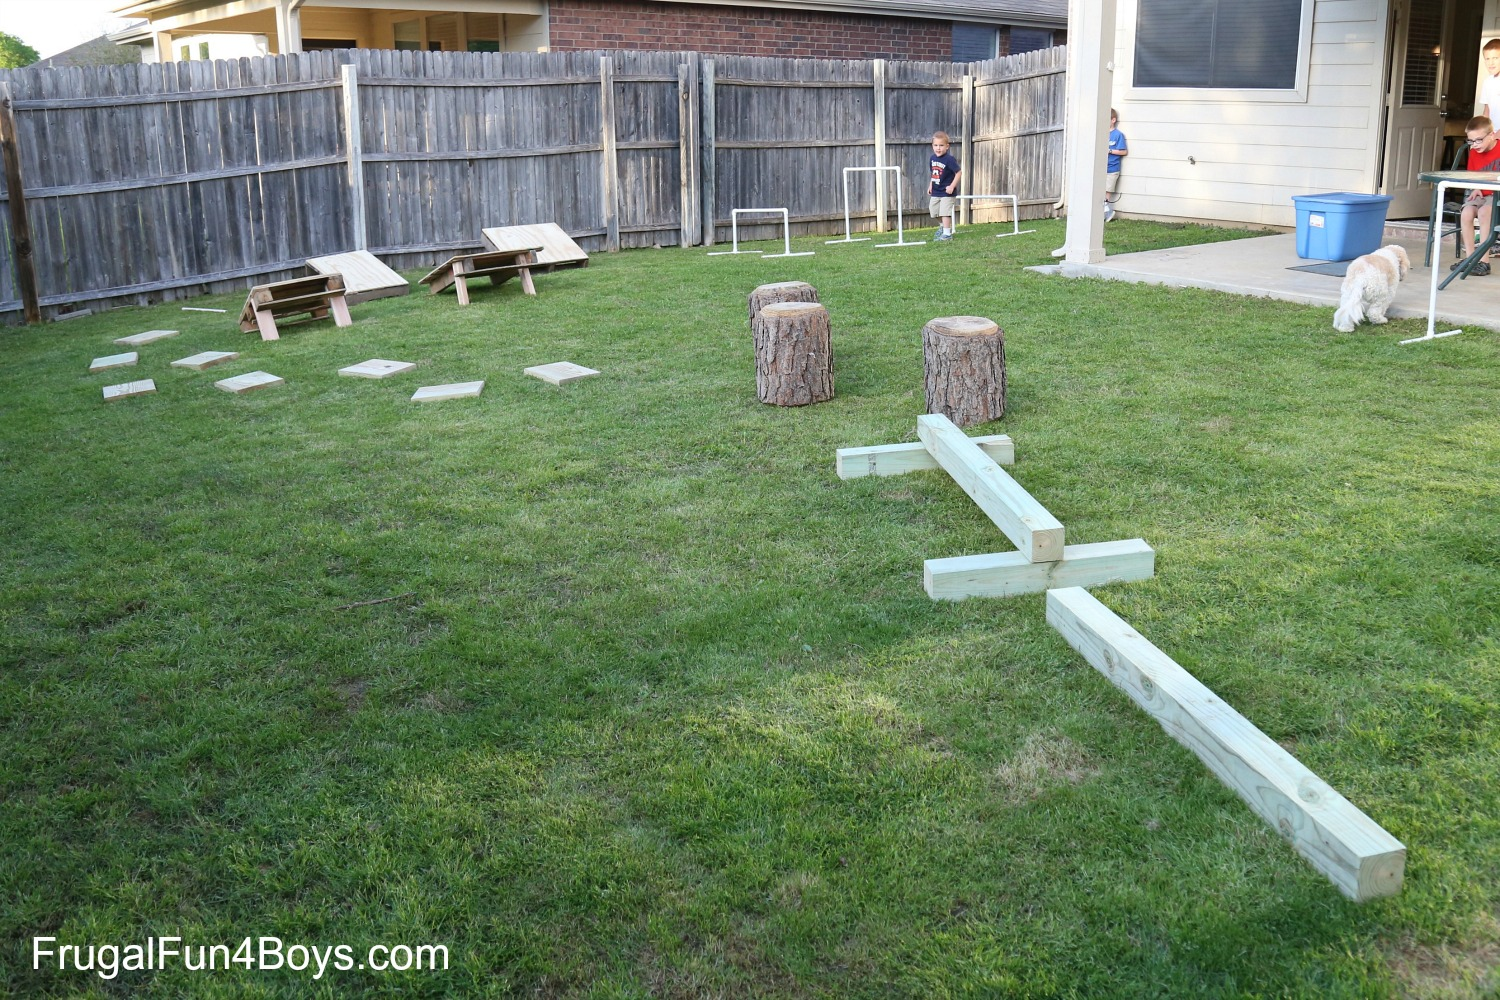 Backyard Obstacle Course - American Ninja Warrior Style! Can be rebuilt different ways.